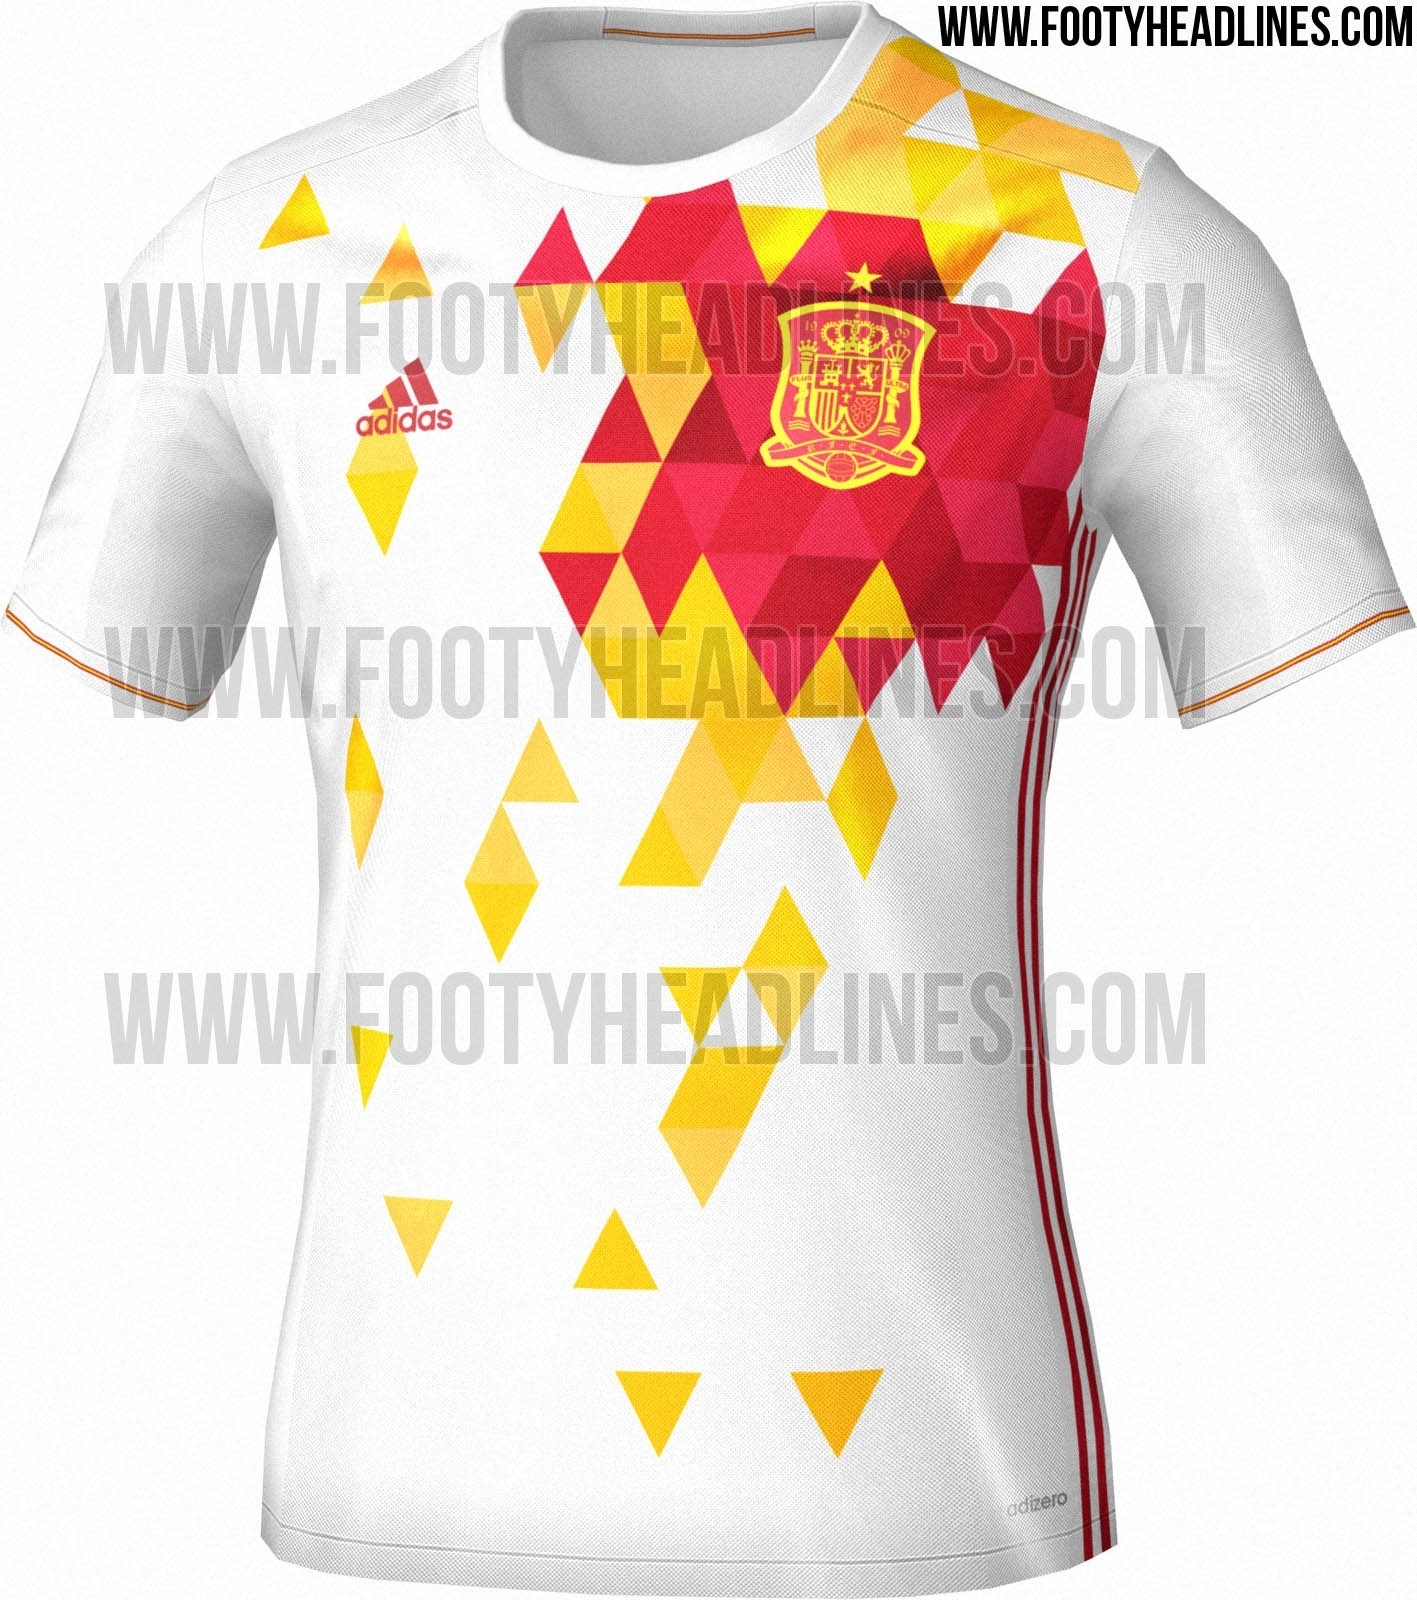 Spain-2016-adidas-new-away-kit-1.jpg